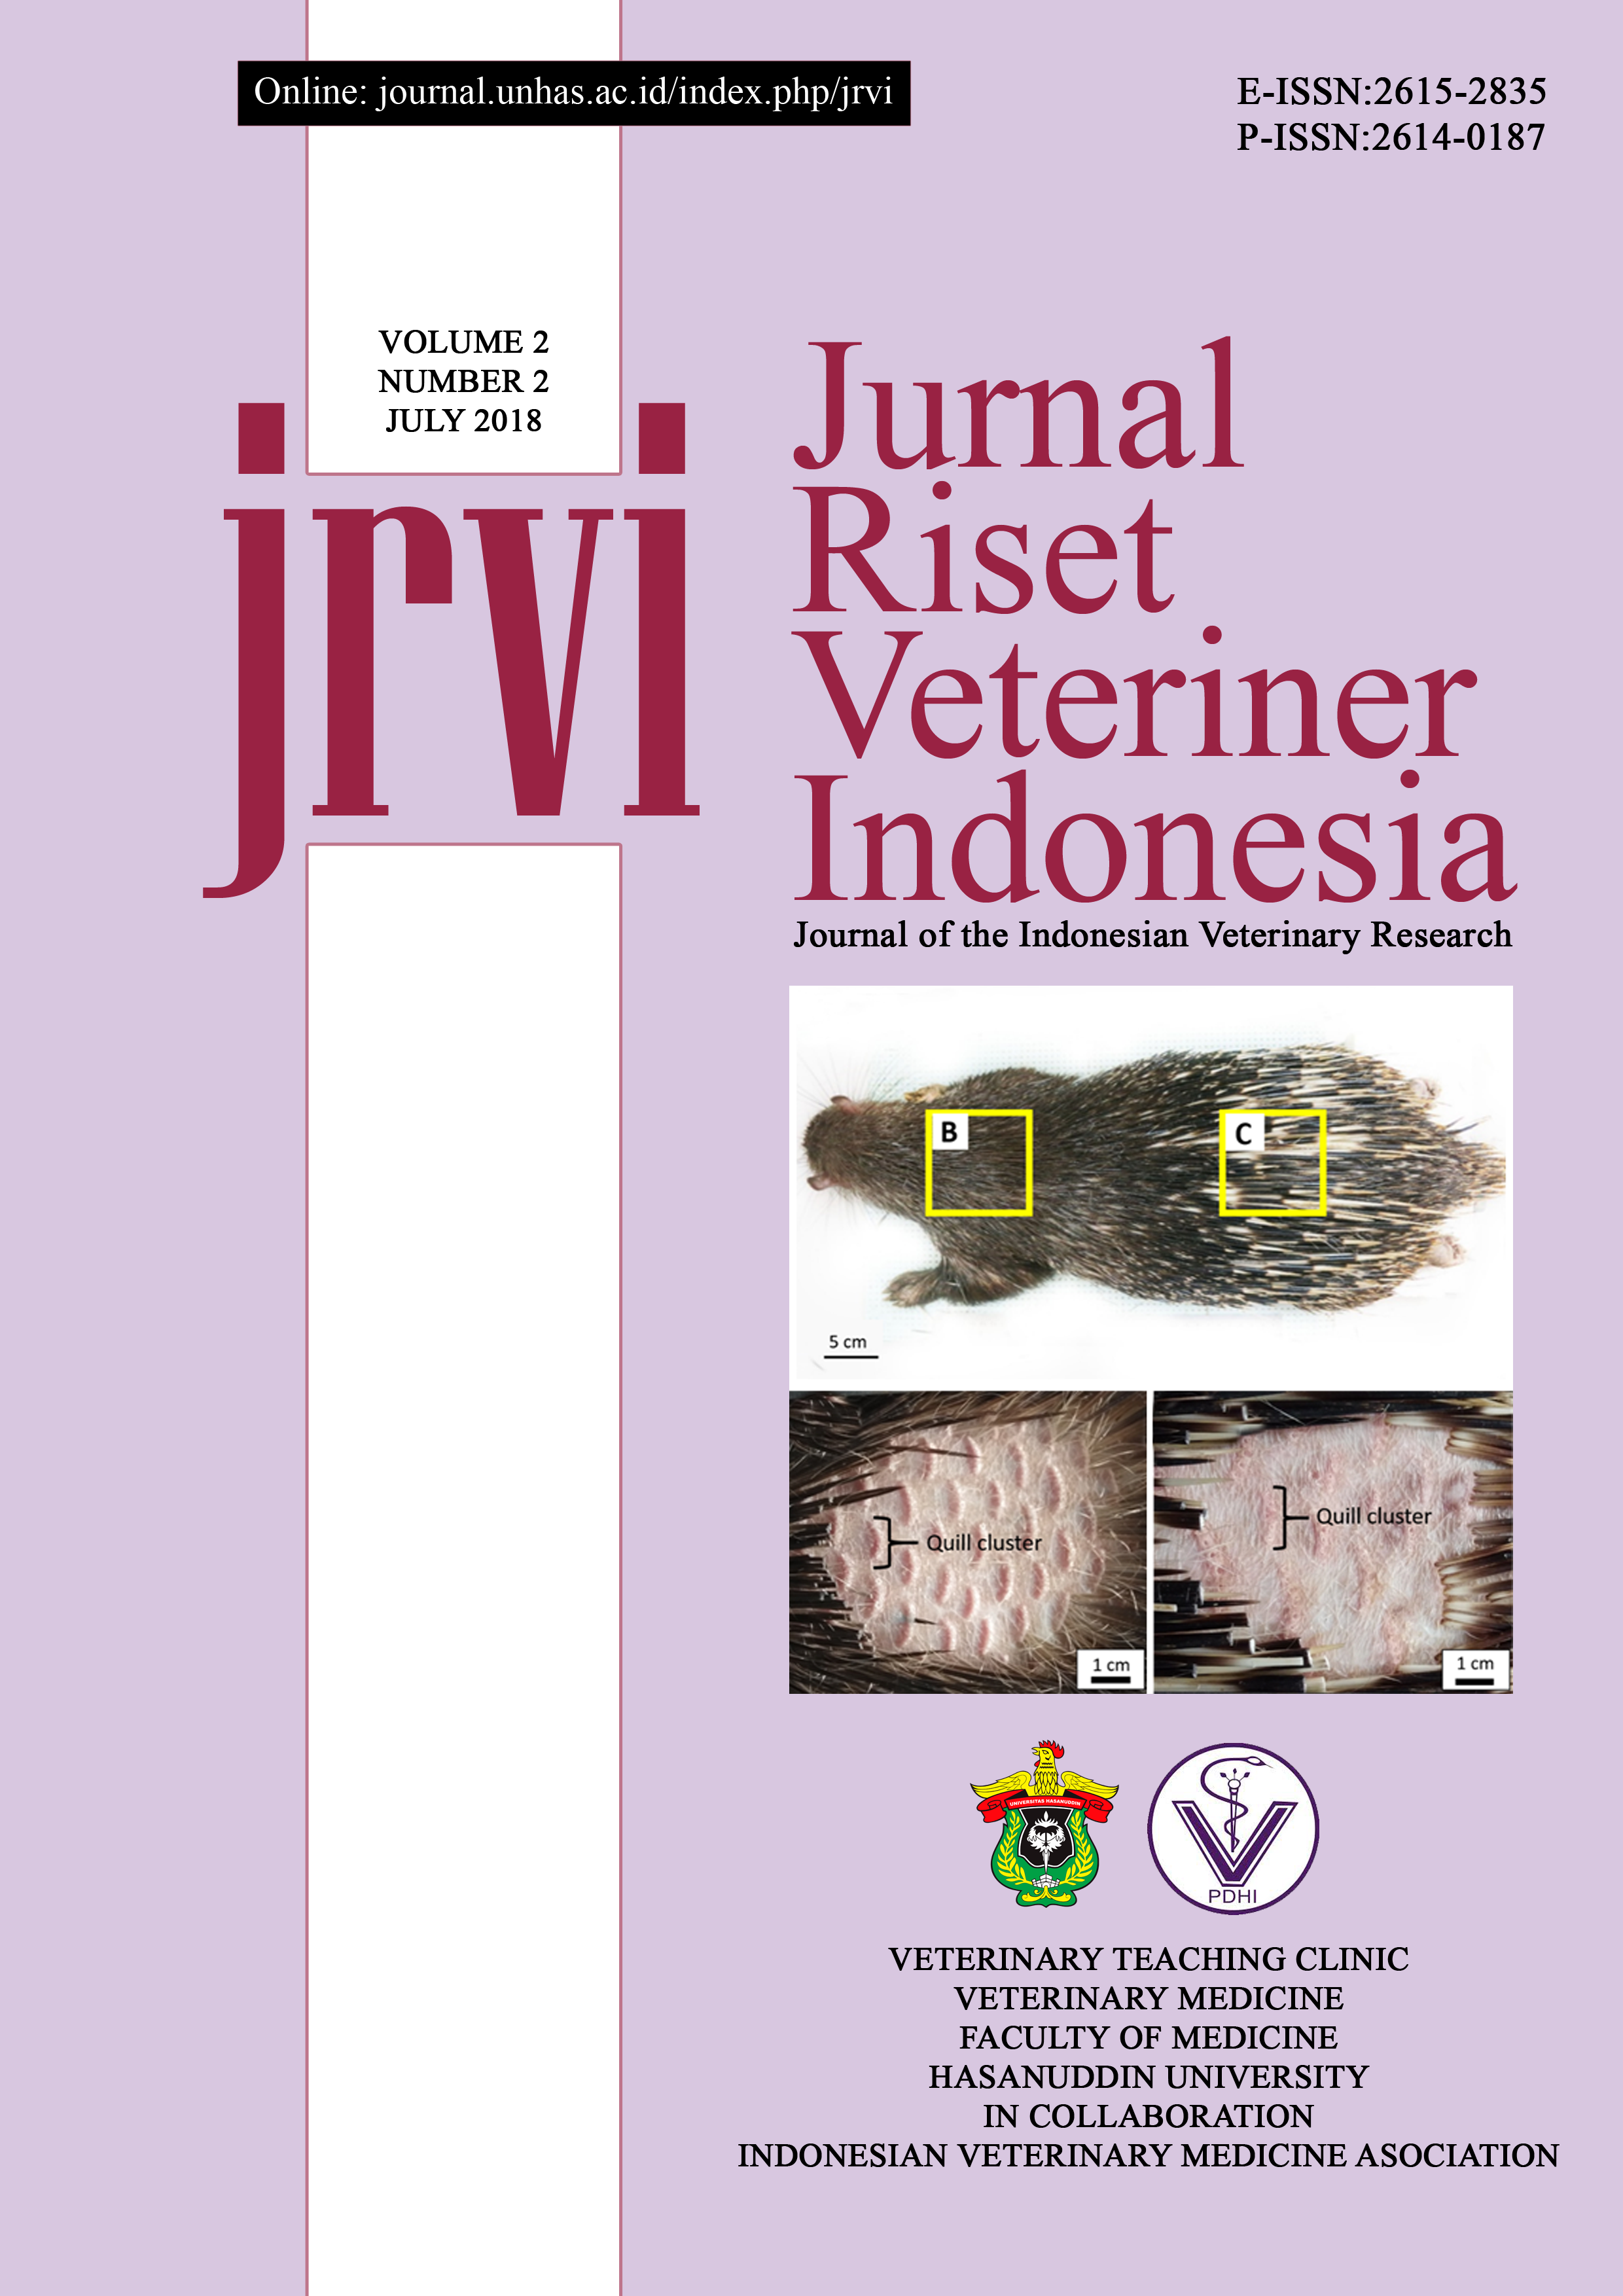 Vitamin E Alpha Tocopherol Level In The Dorsal Skin Of Sunda Porcupine Hystrix Javanica Jurnal Riset Veteriner Indonesia Journal Of The Indonesian Veterinary Research